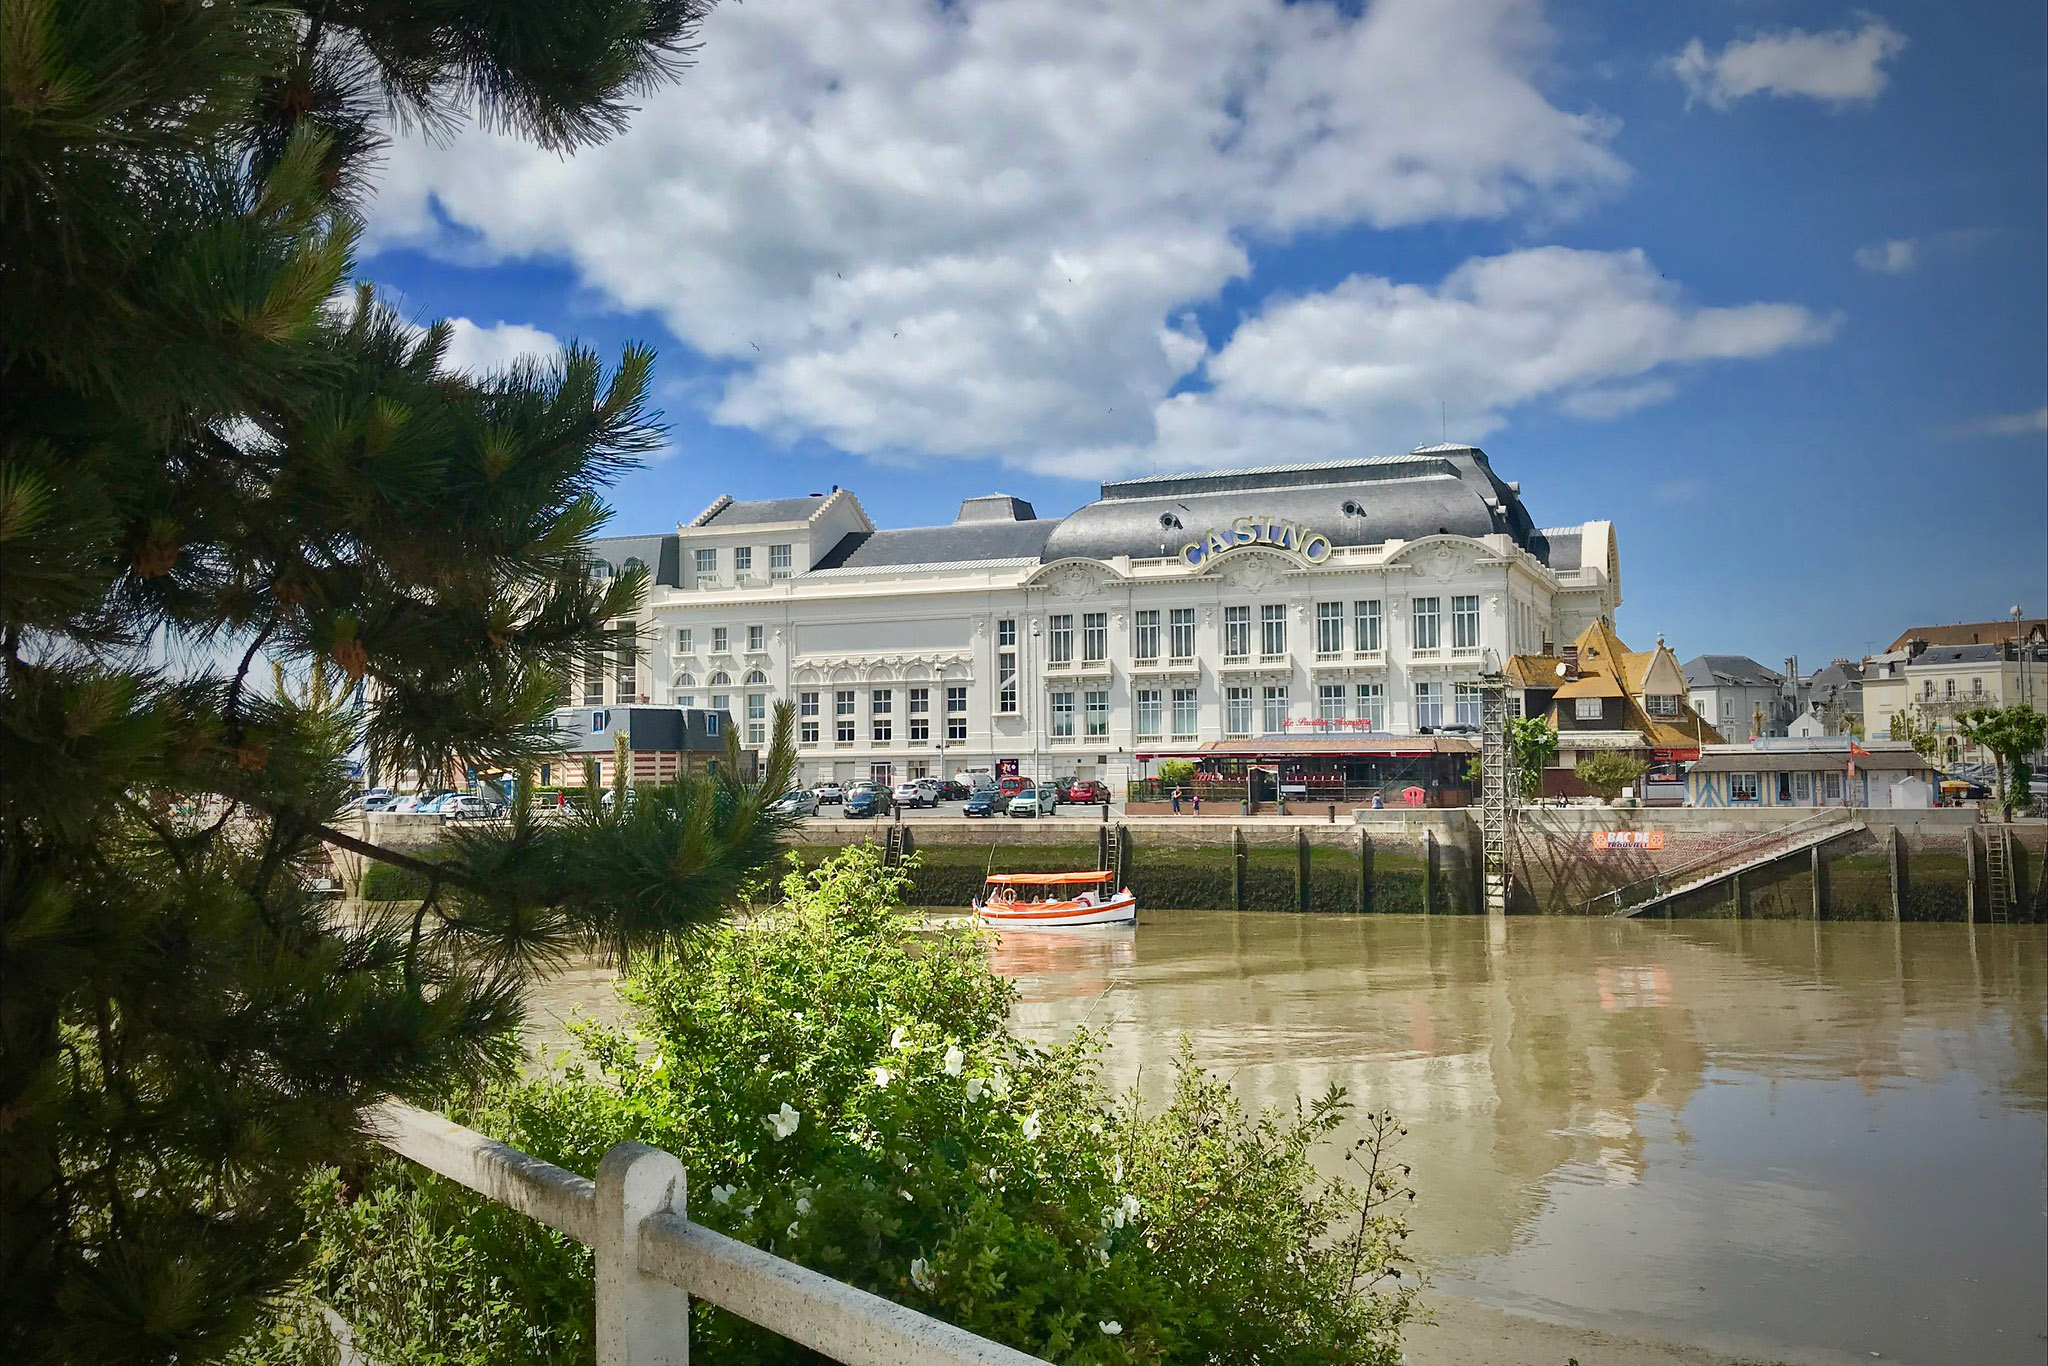 Casino Royale in Deauville